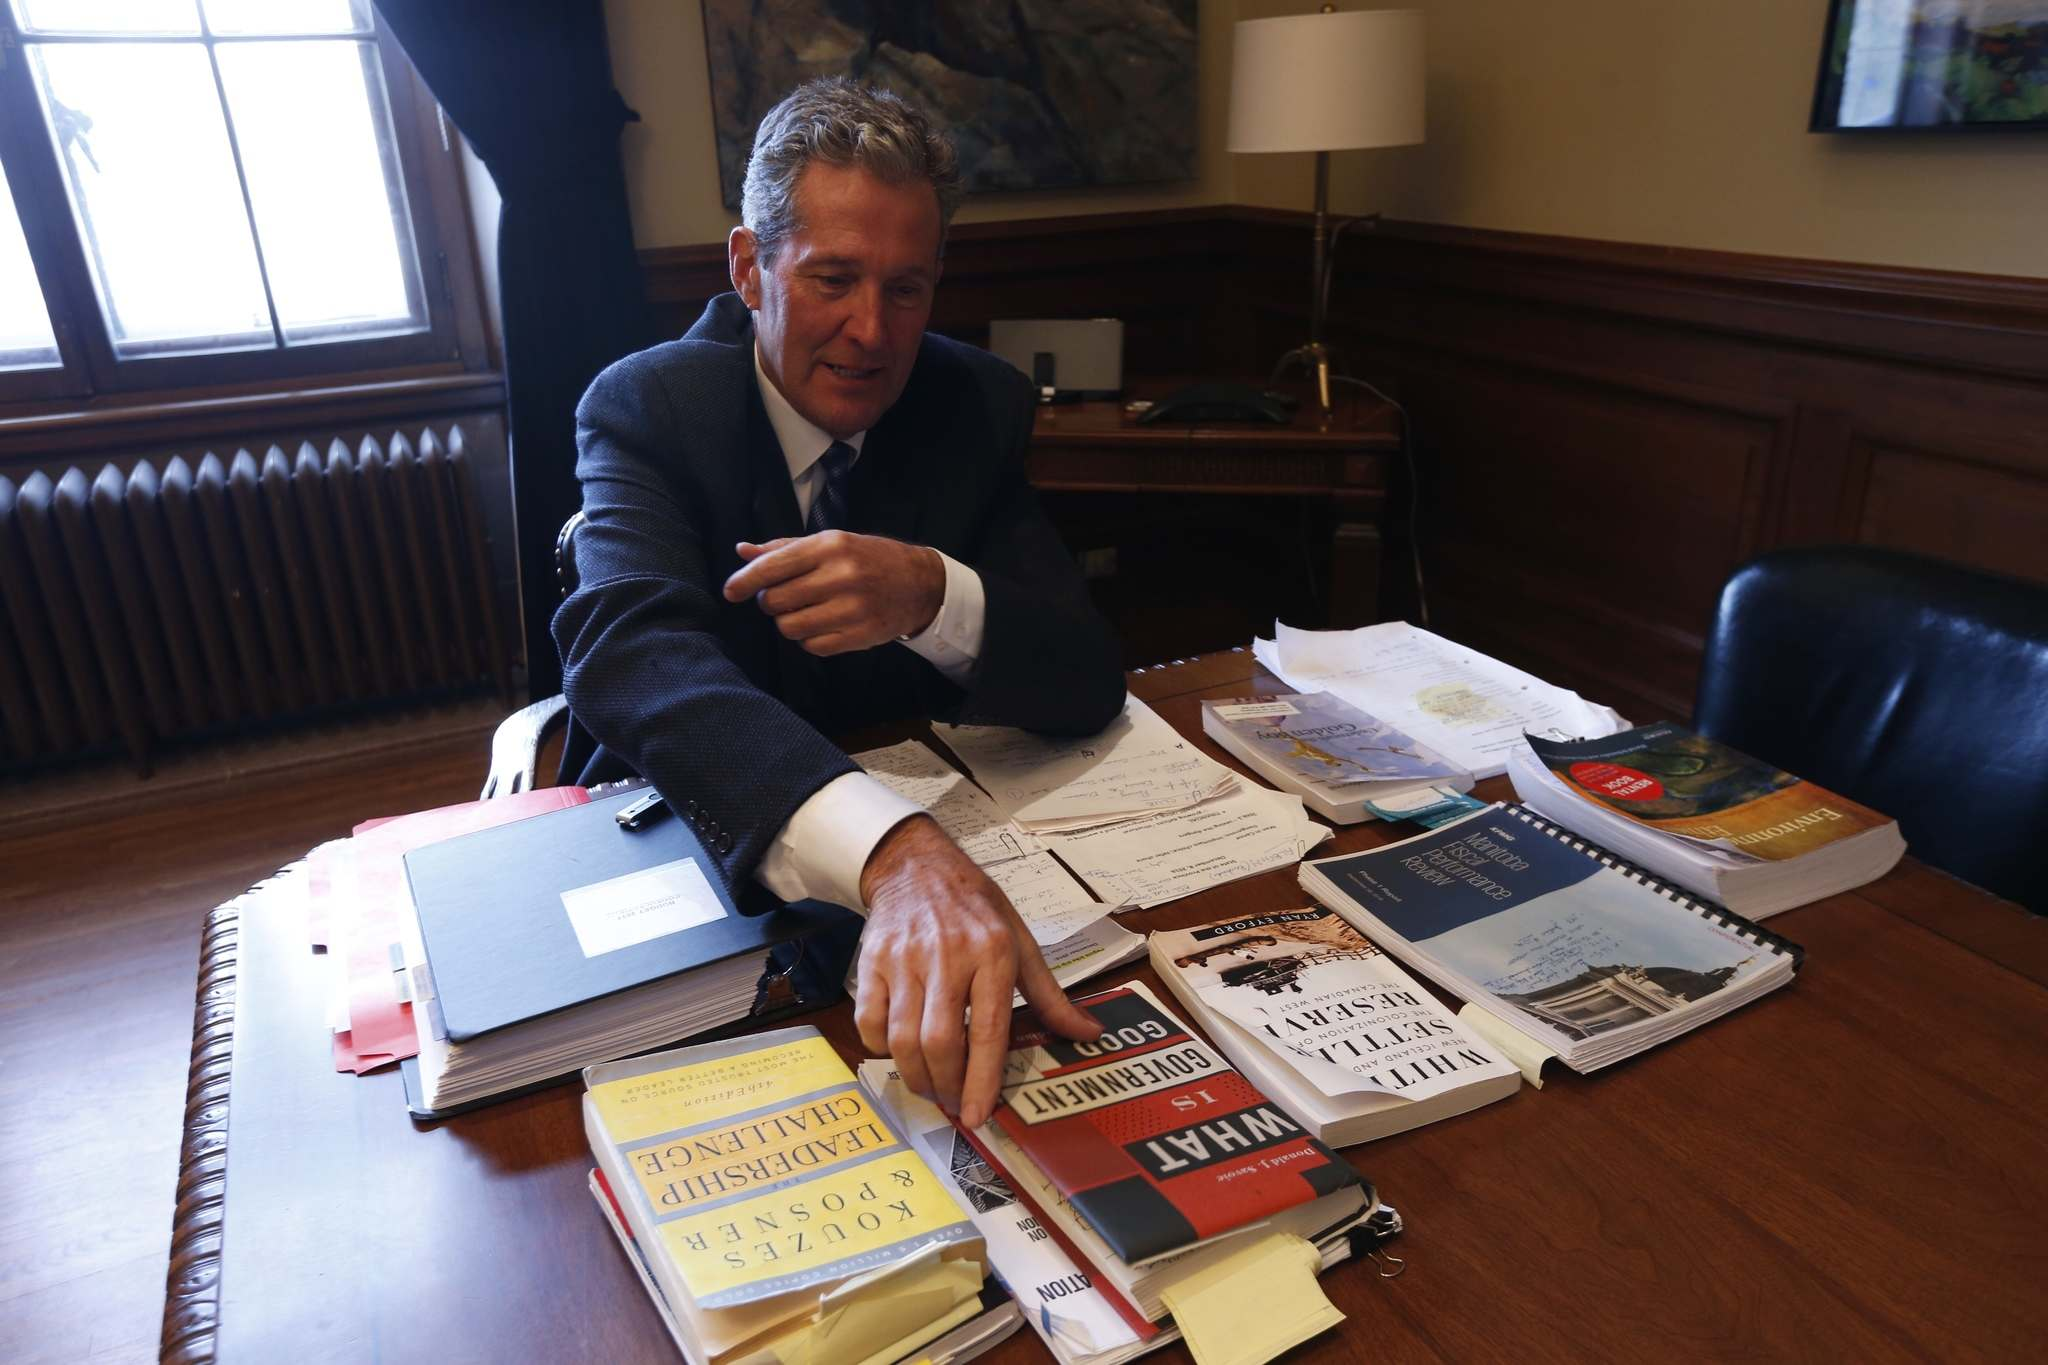 WAYNE GLOWACKI / WINNIPEG FREE PRESS</p><p>Premier Brian Pallister in his office Friday with a sample of the reading material he had with him in Costa Rica. </p>